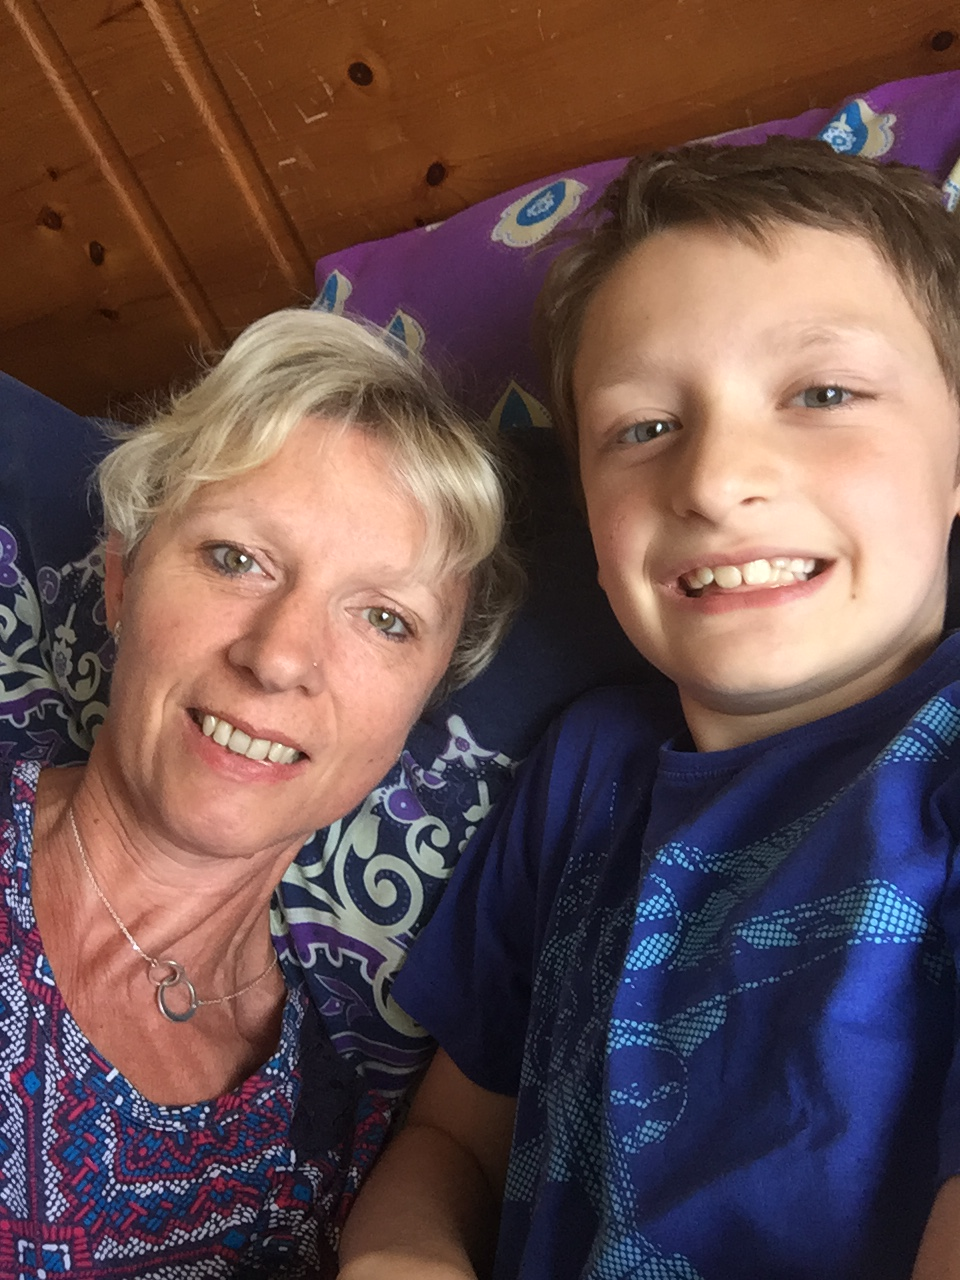 Mummy and Me - August 2018